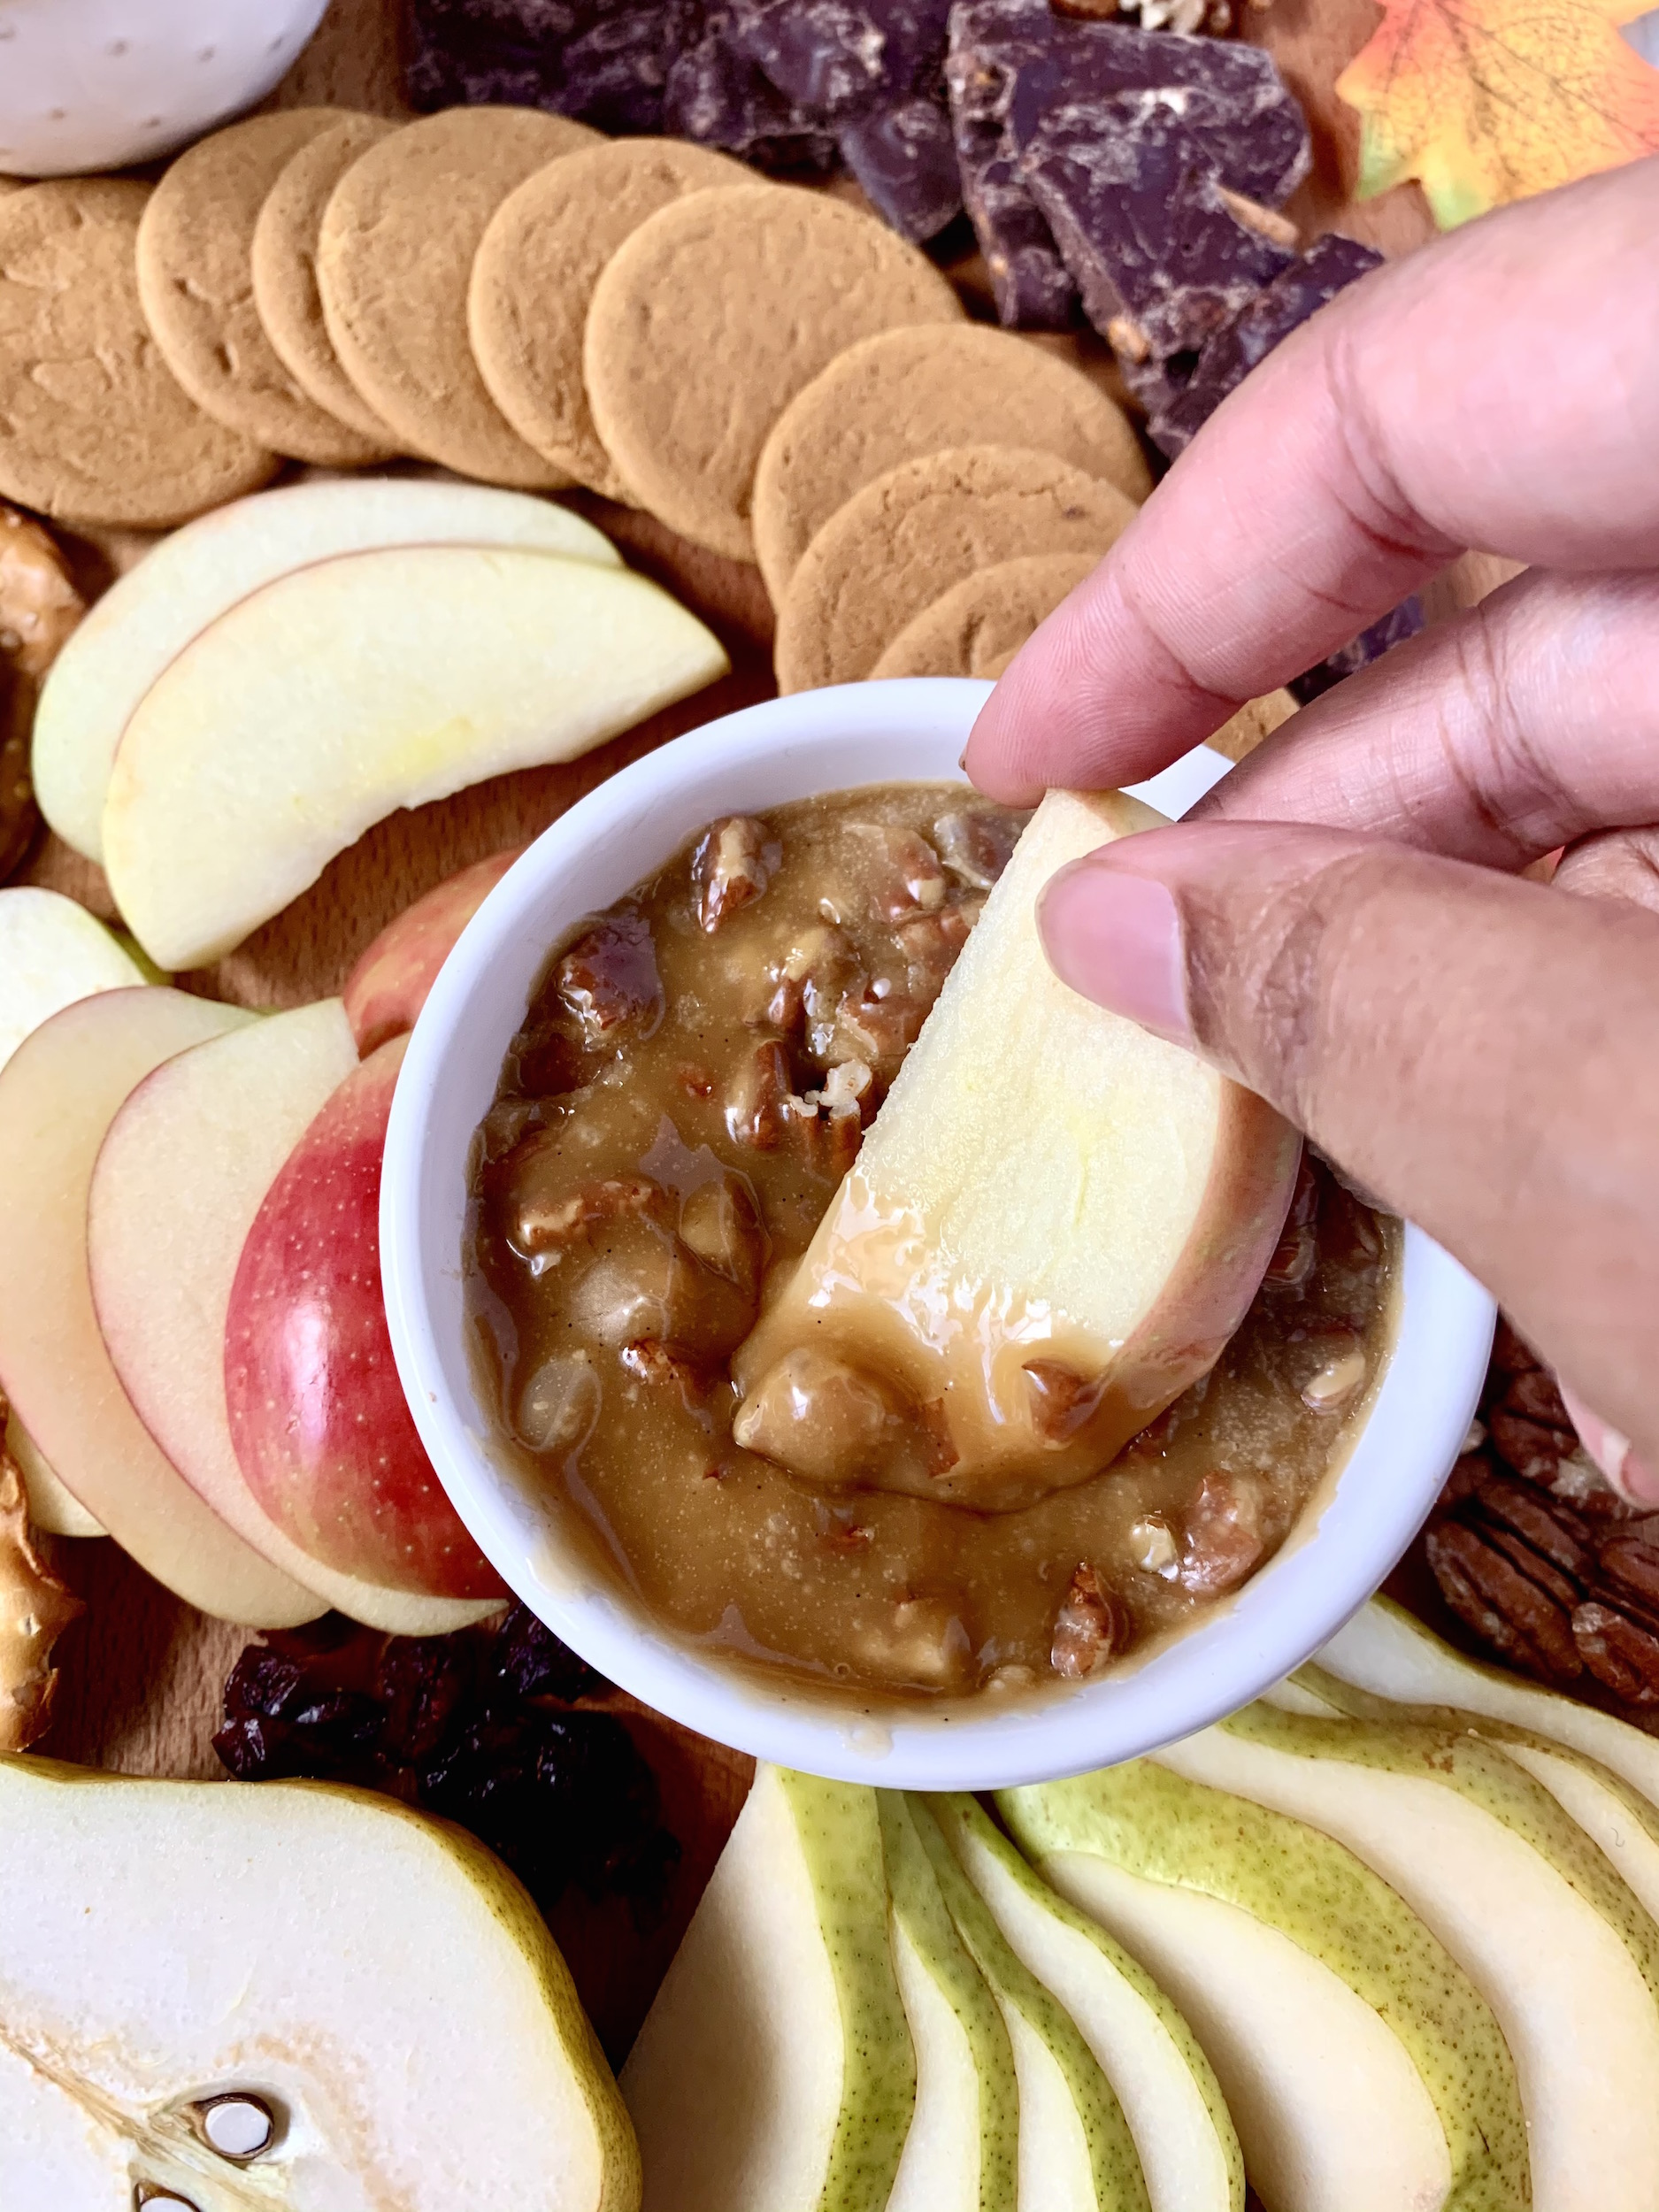 Dipping an apple in pecan salted caramel dip with cookies and fruit in the background